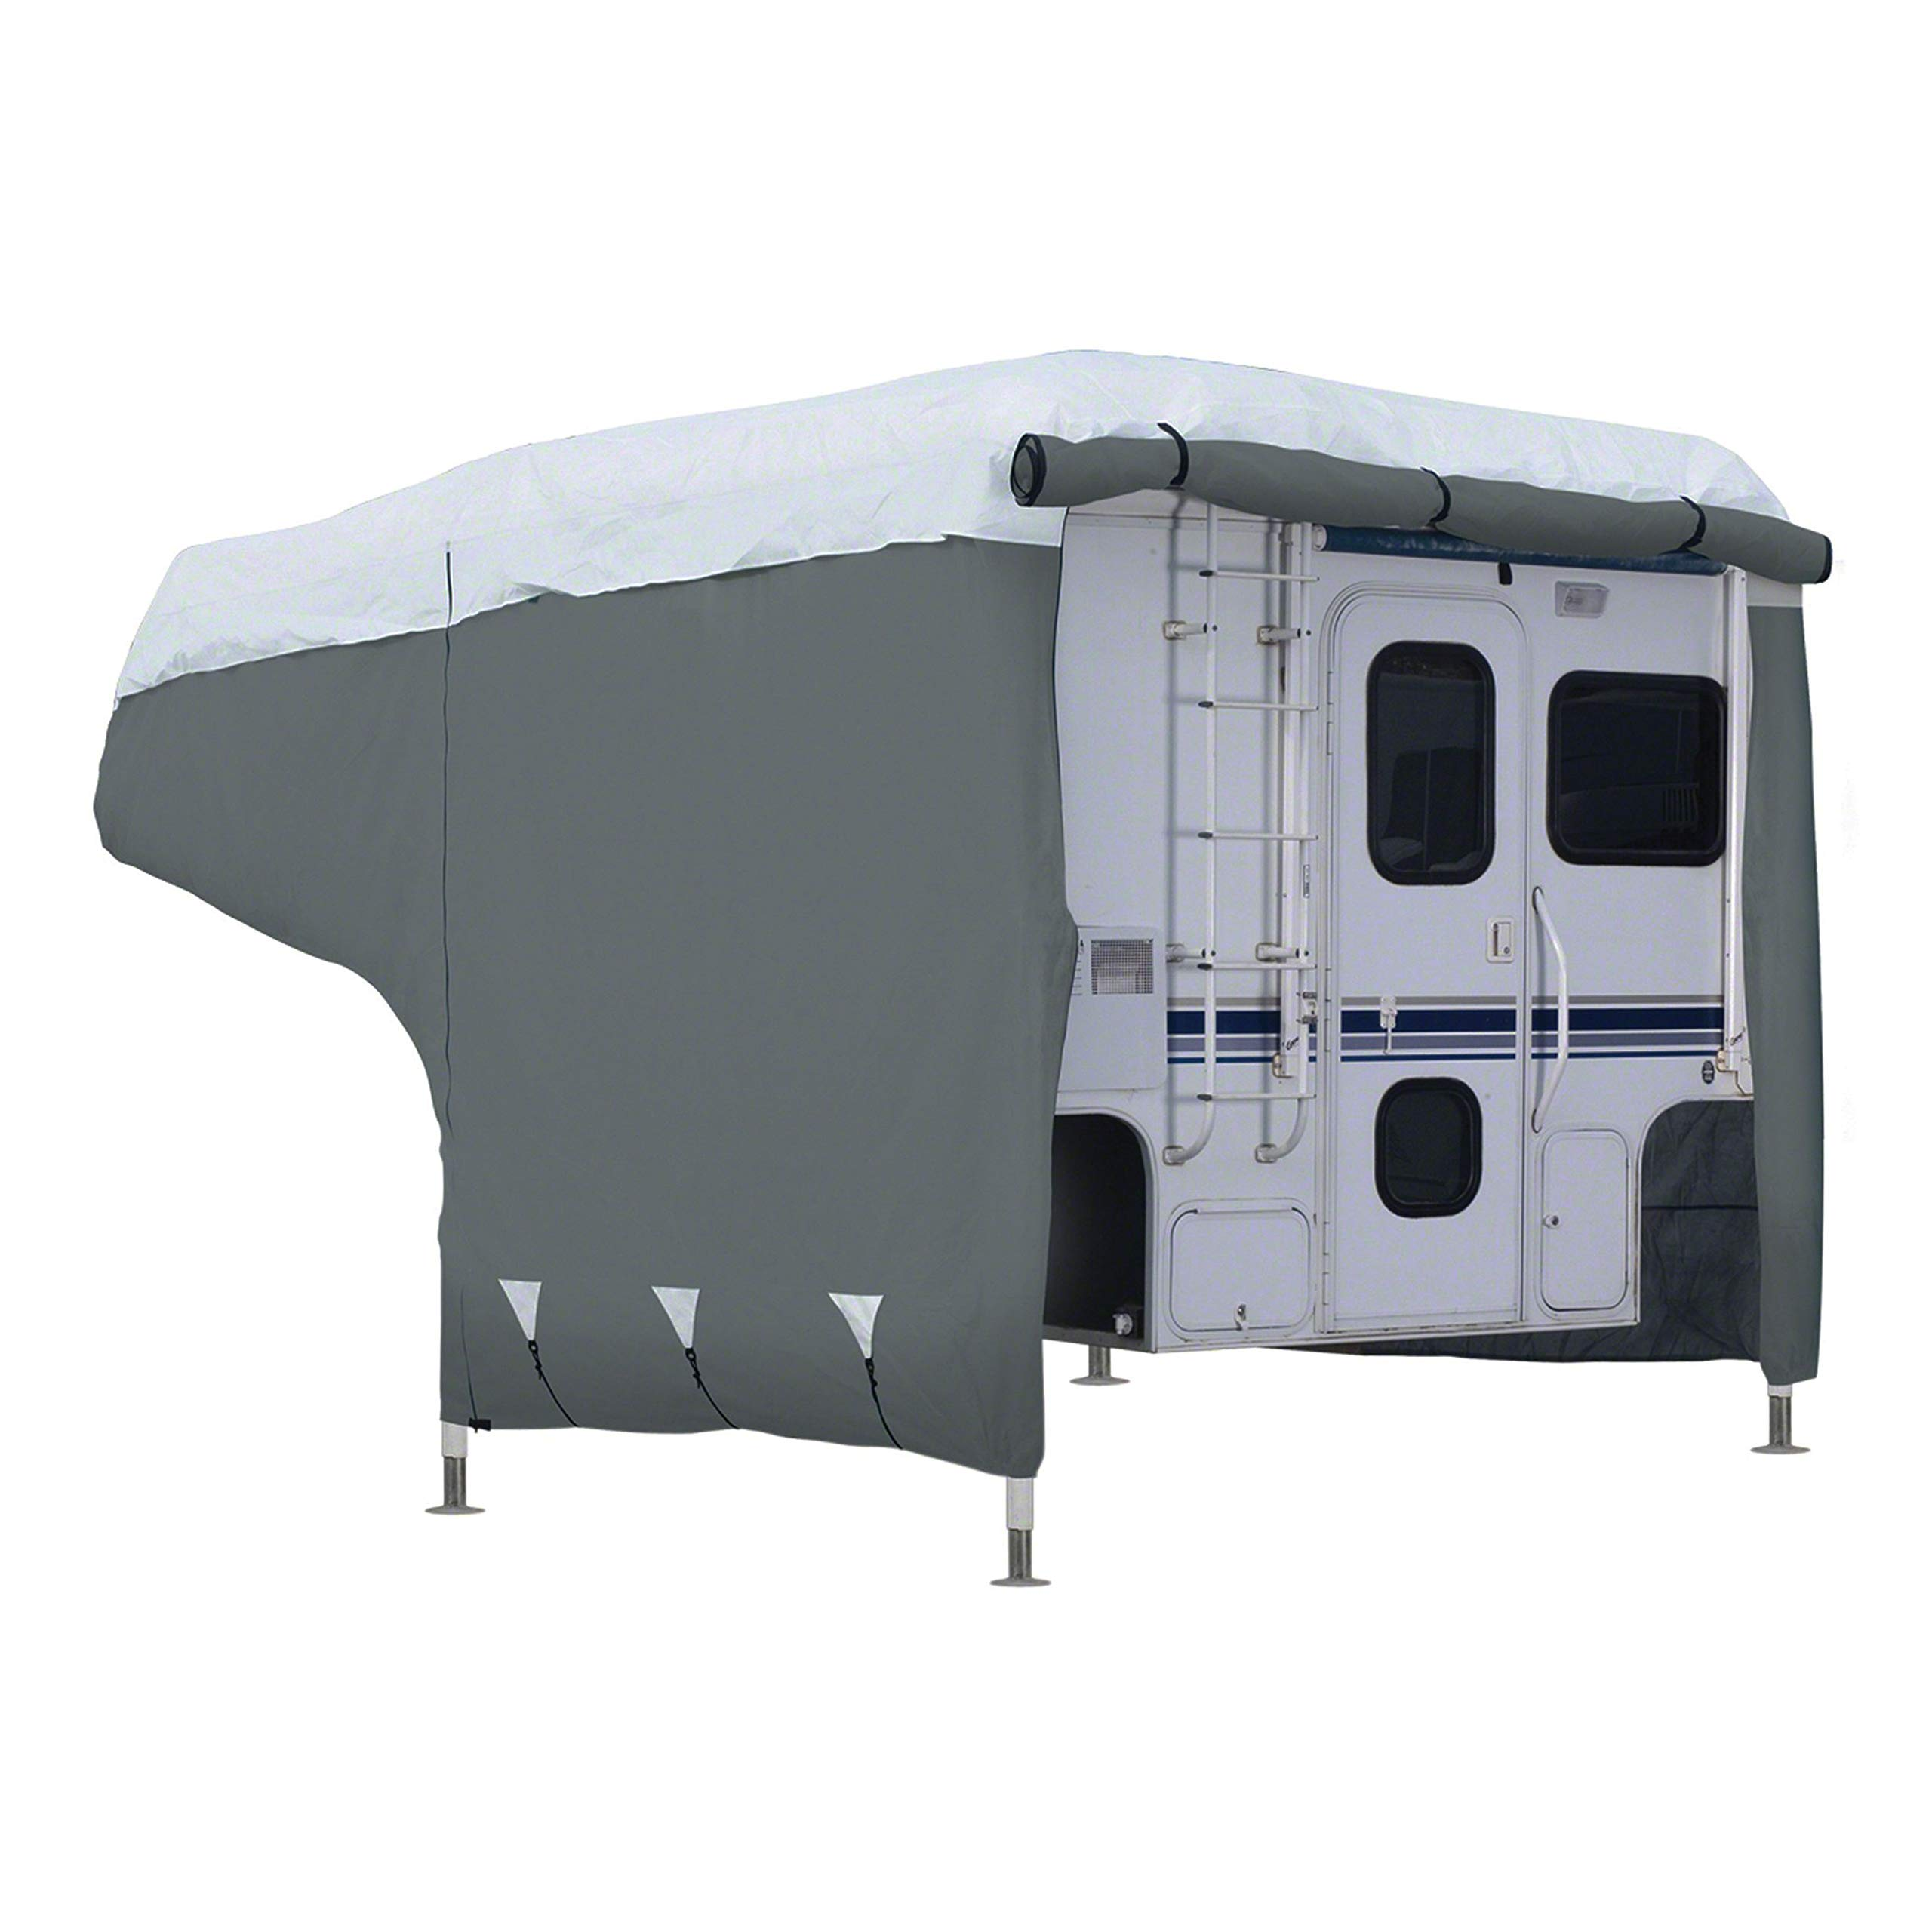 Classic Accessories OverDrive PolyPro 3 Deluxe Camper Cover, Fits 10' - 12' Campers by Classic Accessories